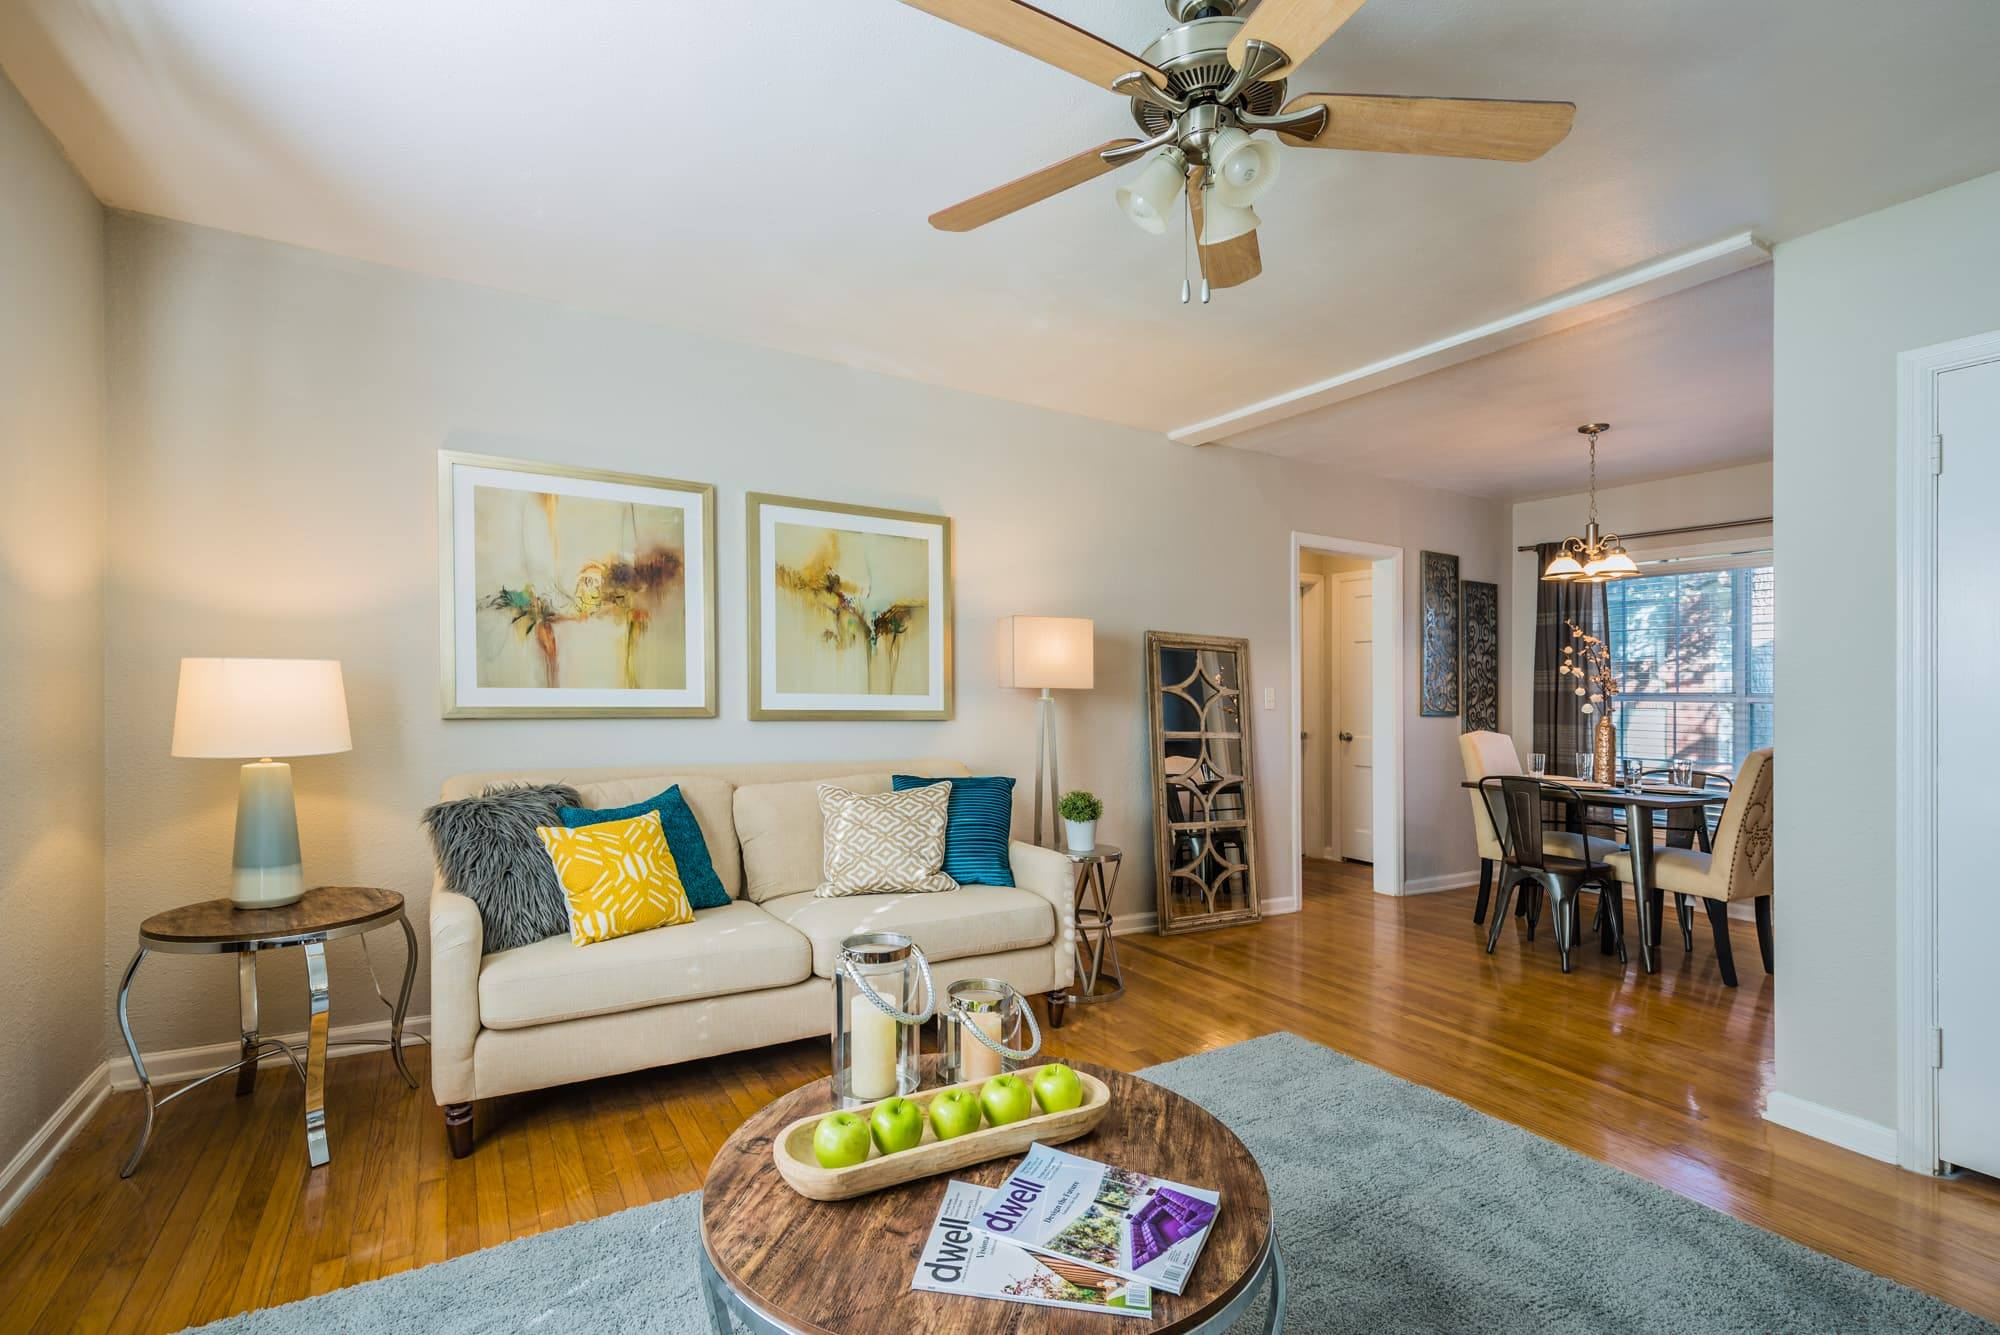 Neutral Color Scheme at Crestwood Place Apartments in Fort Worth, TX